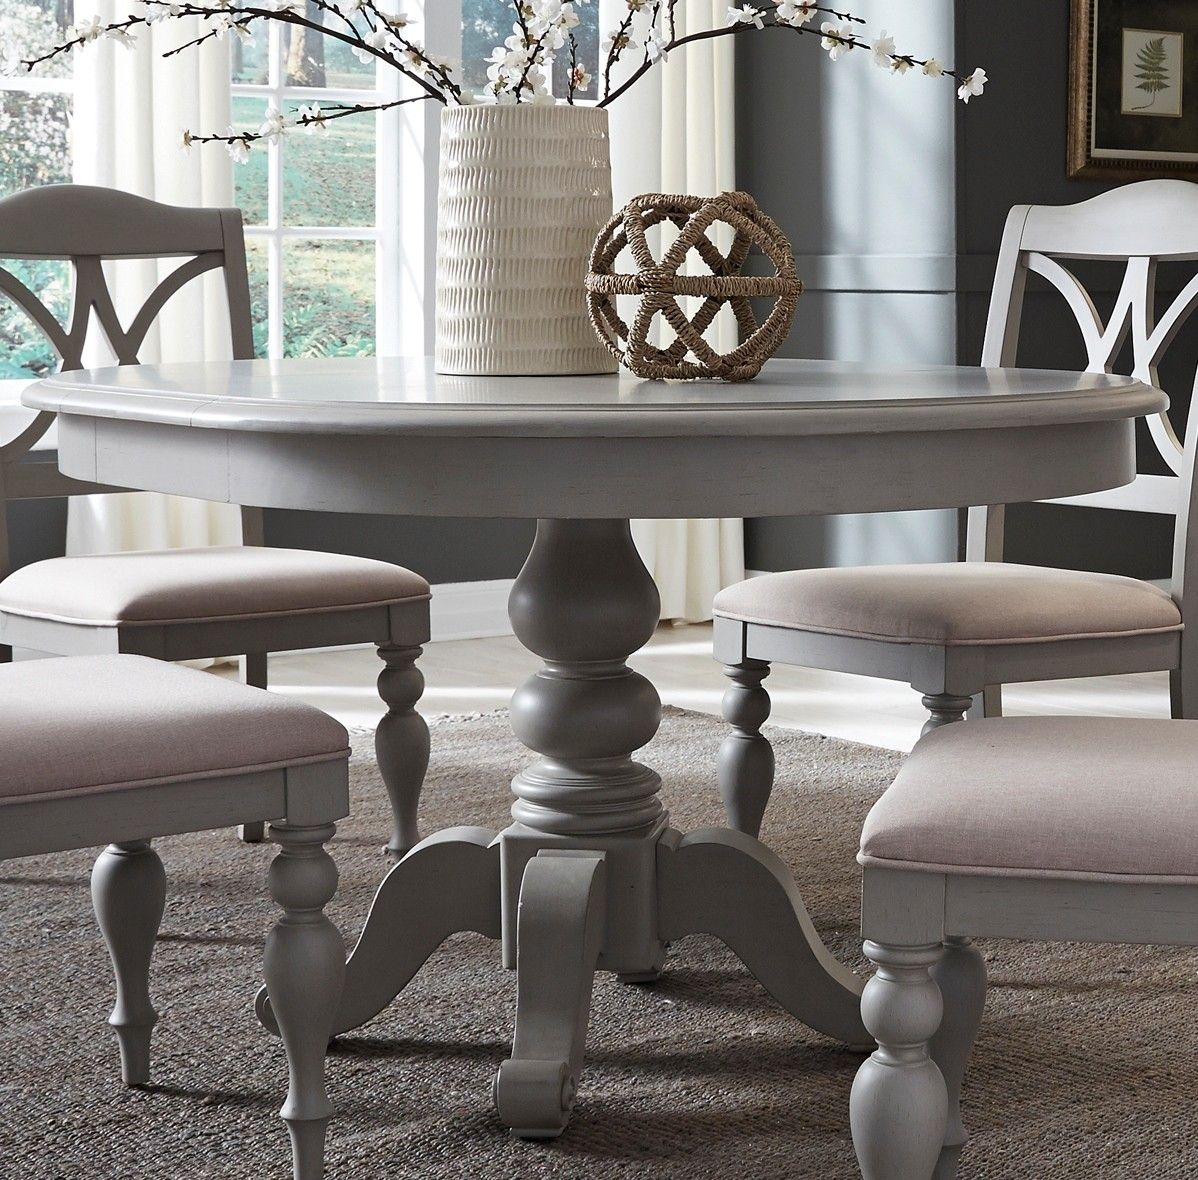 Summer House Dove Grey Round Extendable Dining Table Orr St - Grey round extending dining table